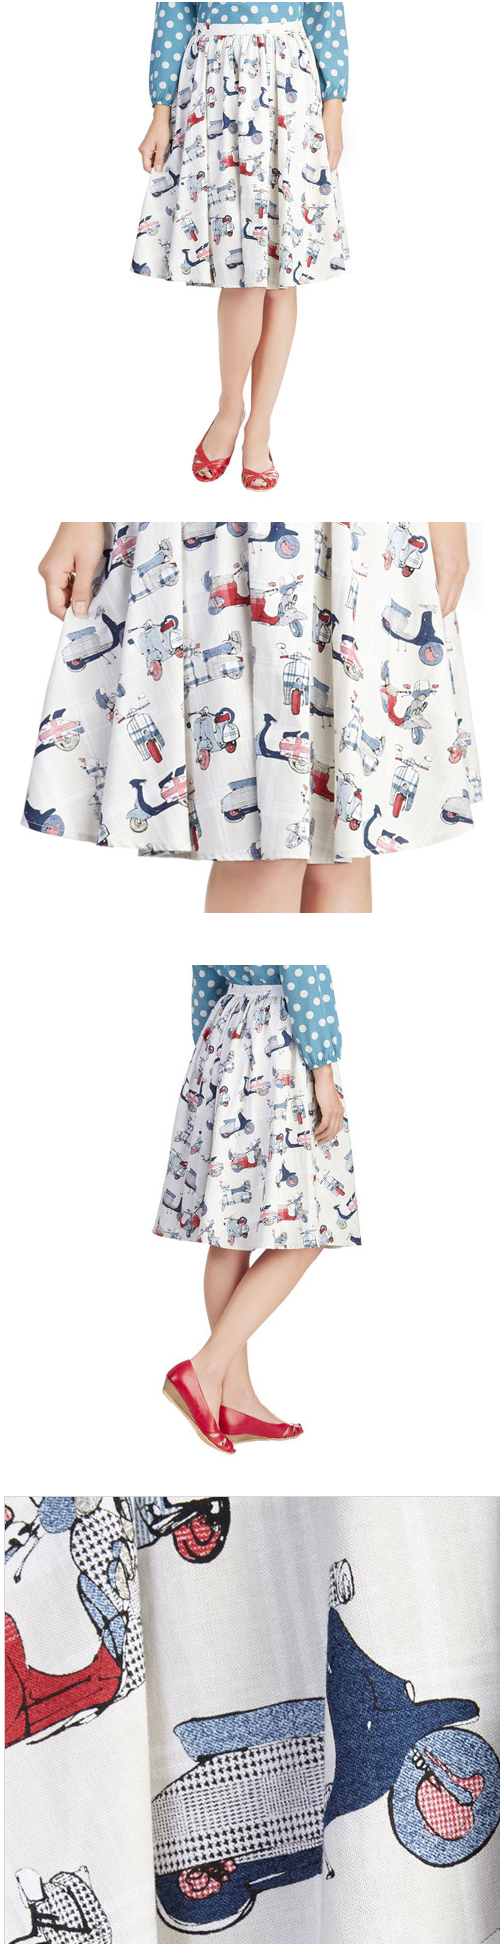 Traffic Patterns Skirt Vespa Lambretta Fabric ModCloth Mod